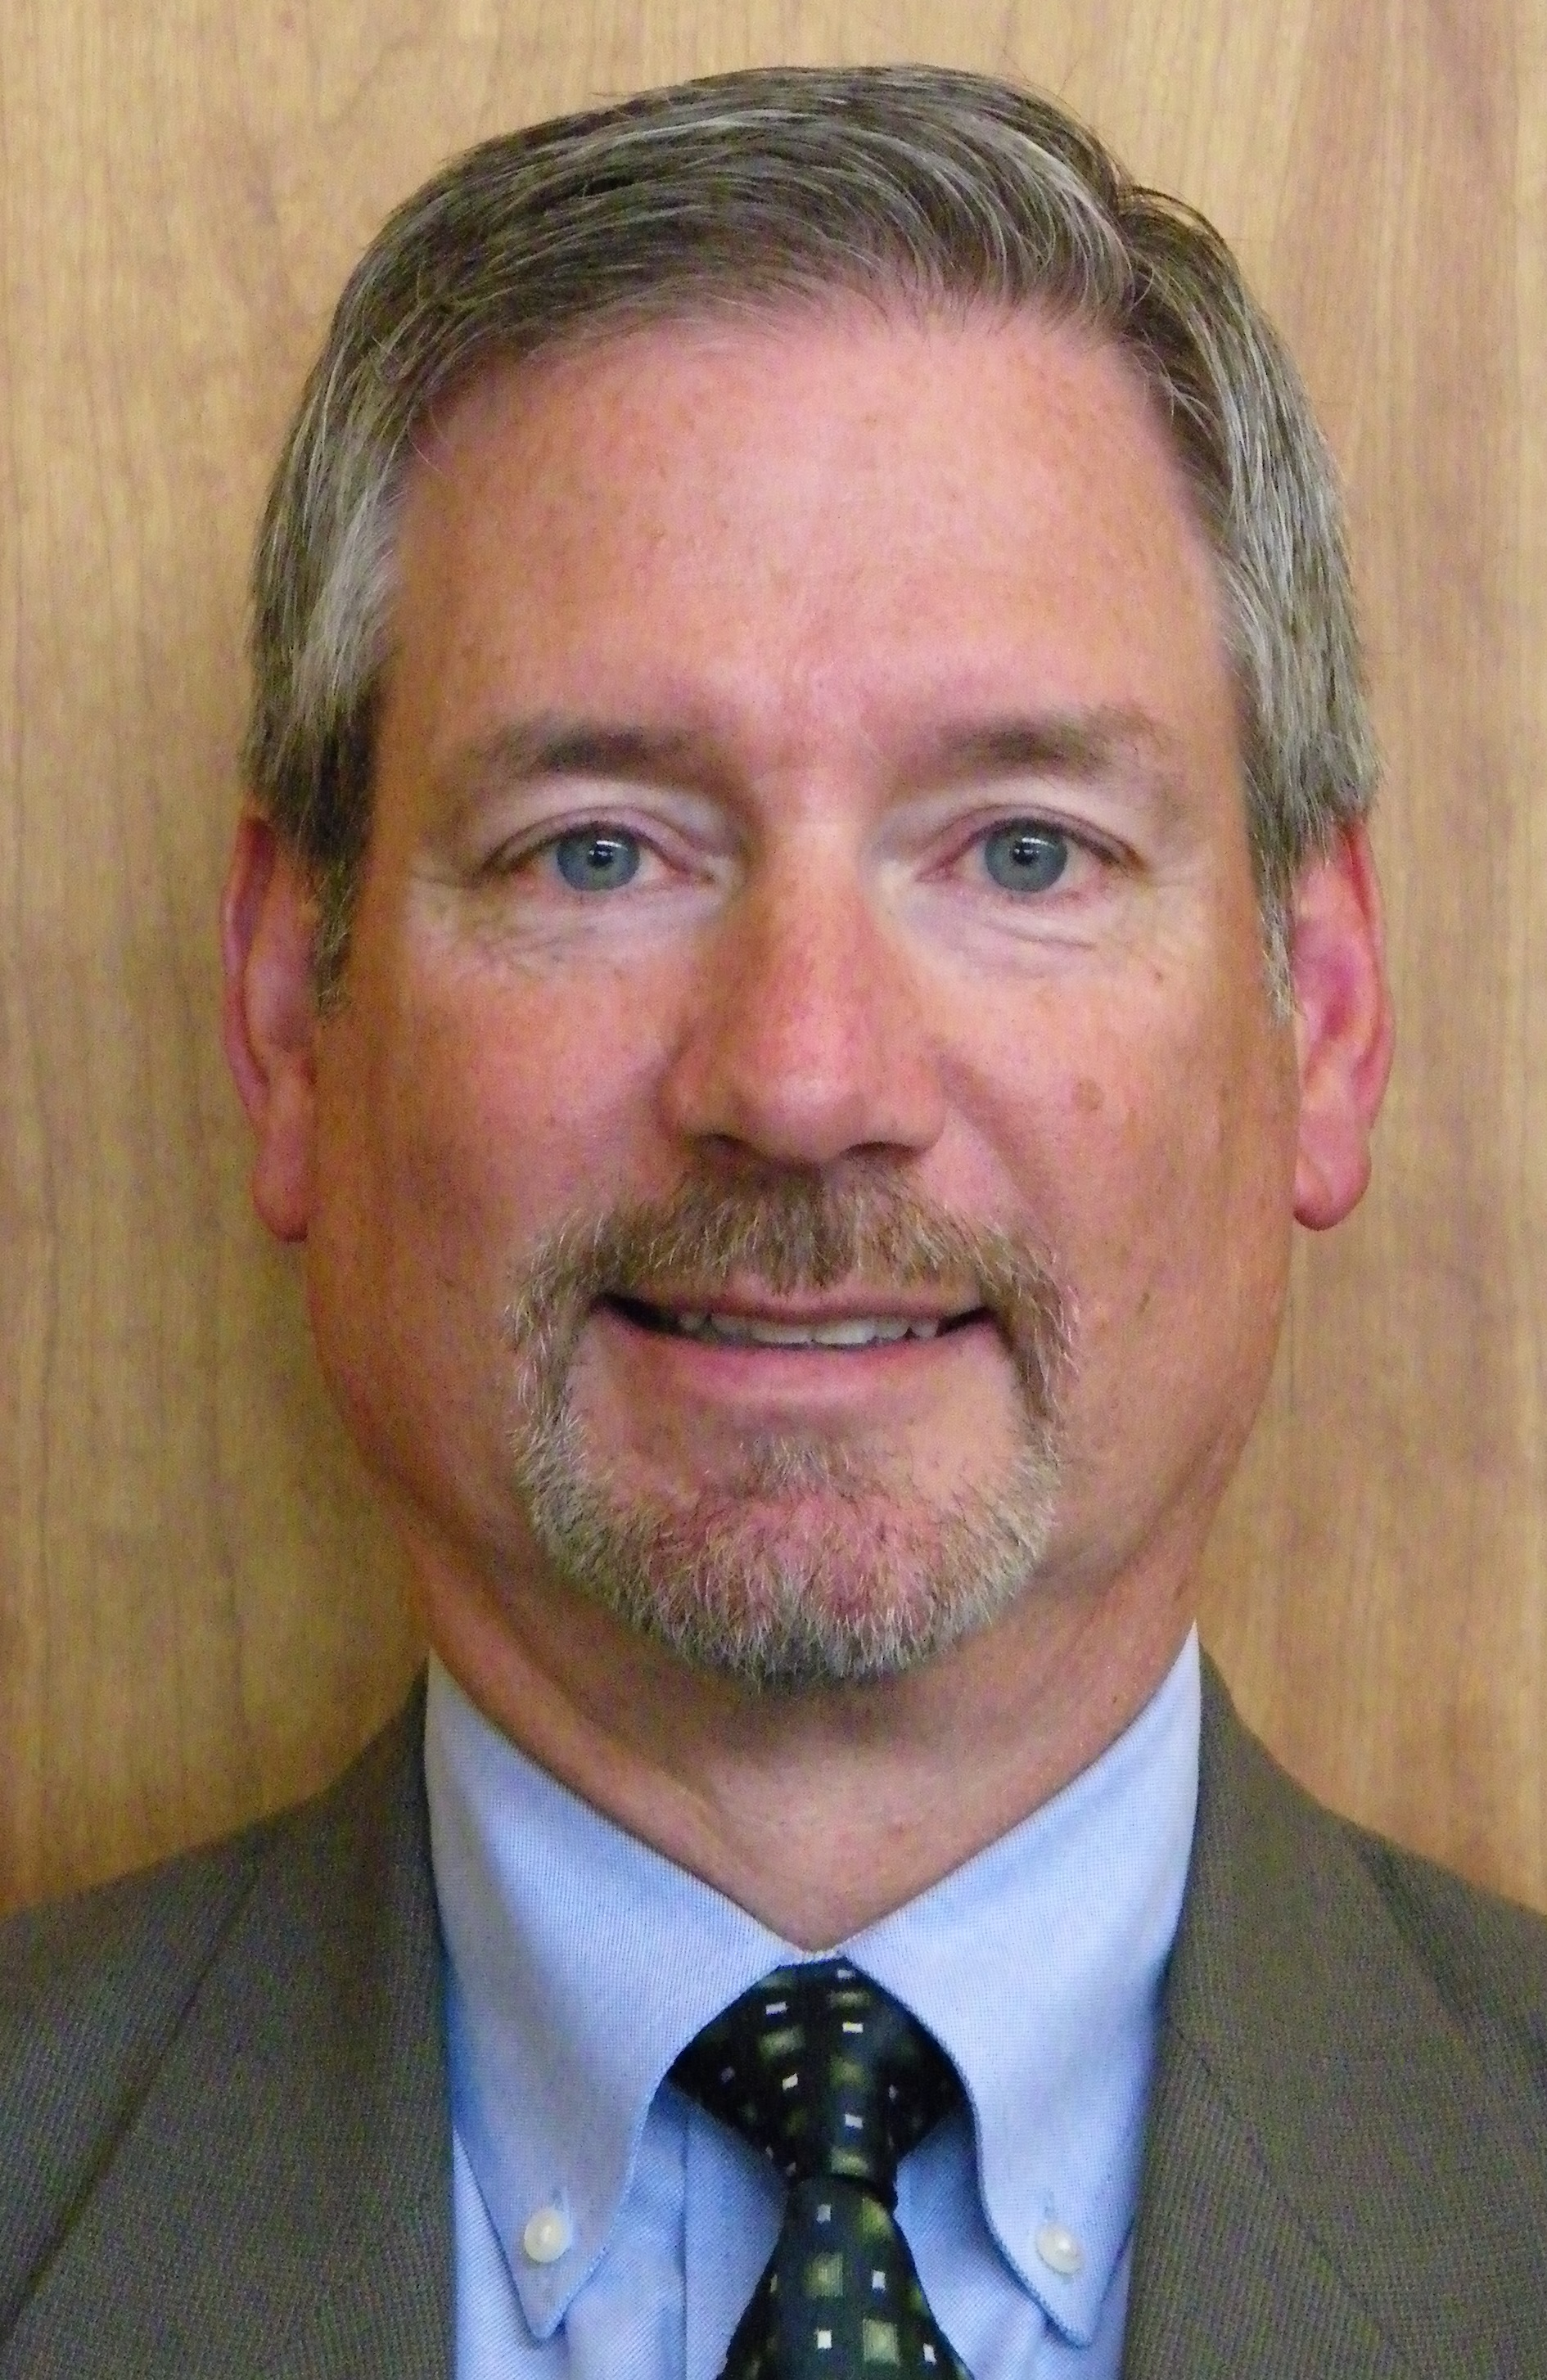 Judge Kevin P. Kelly